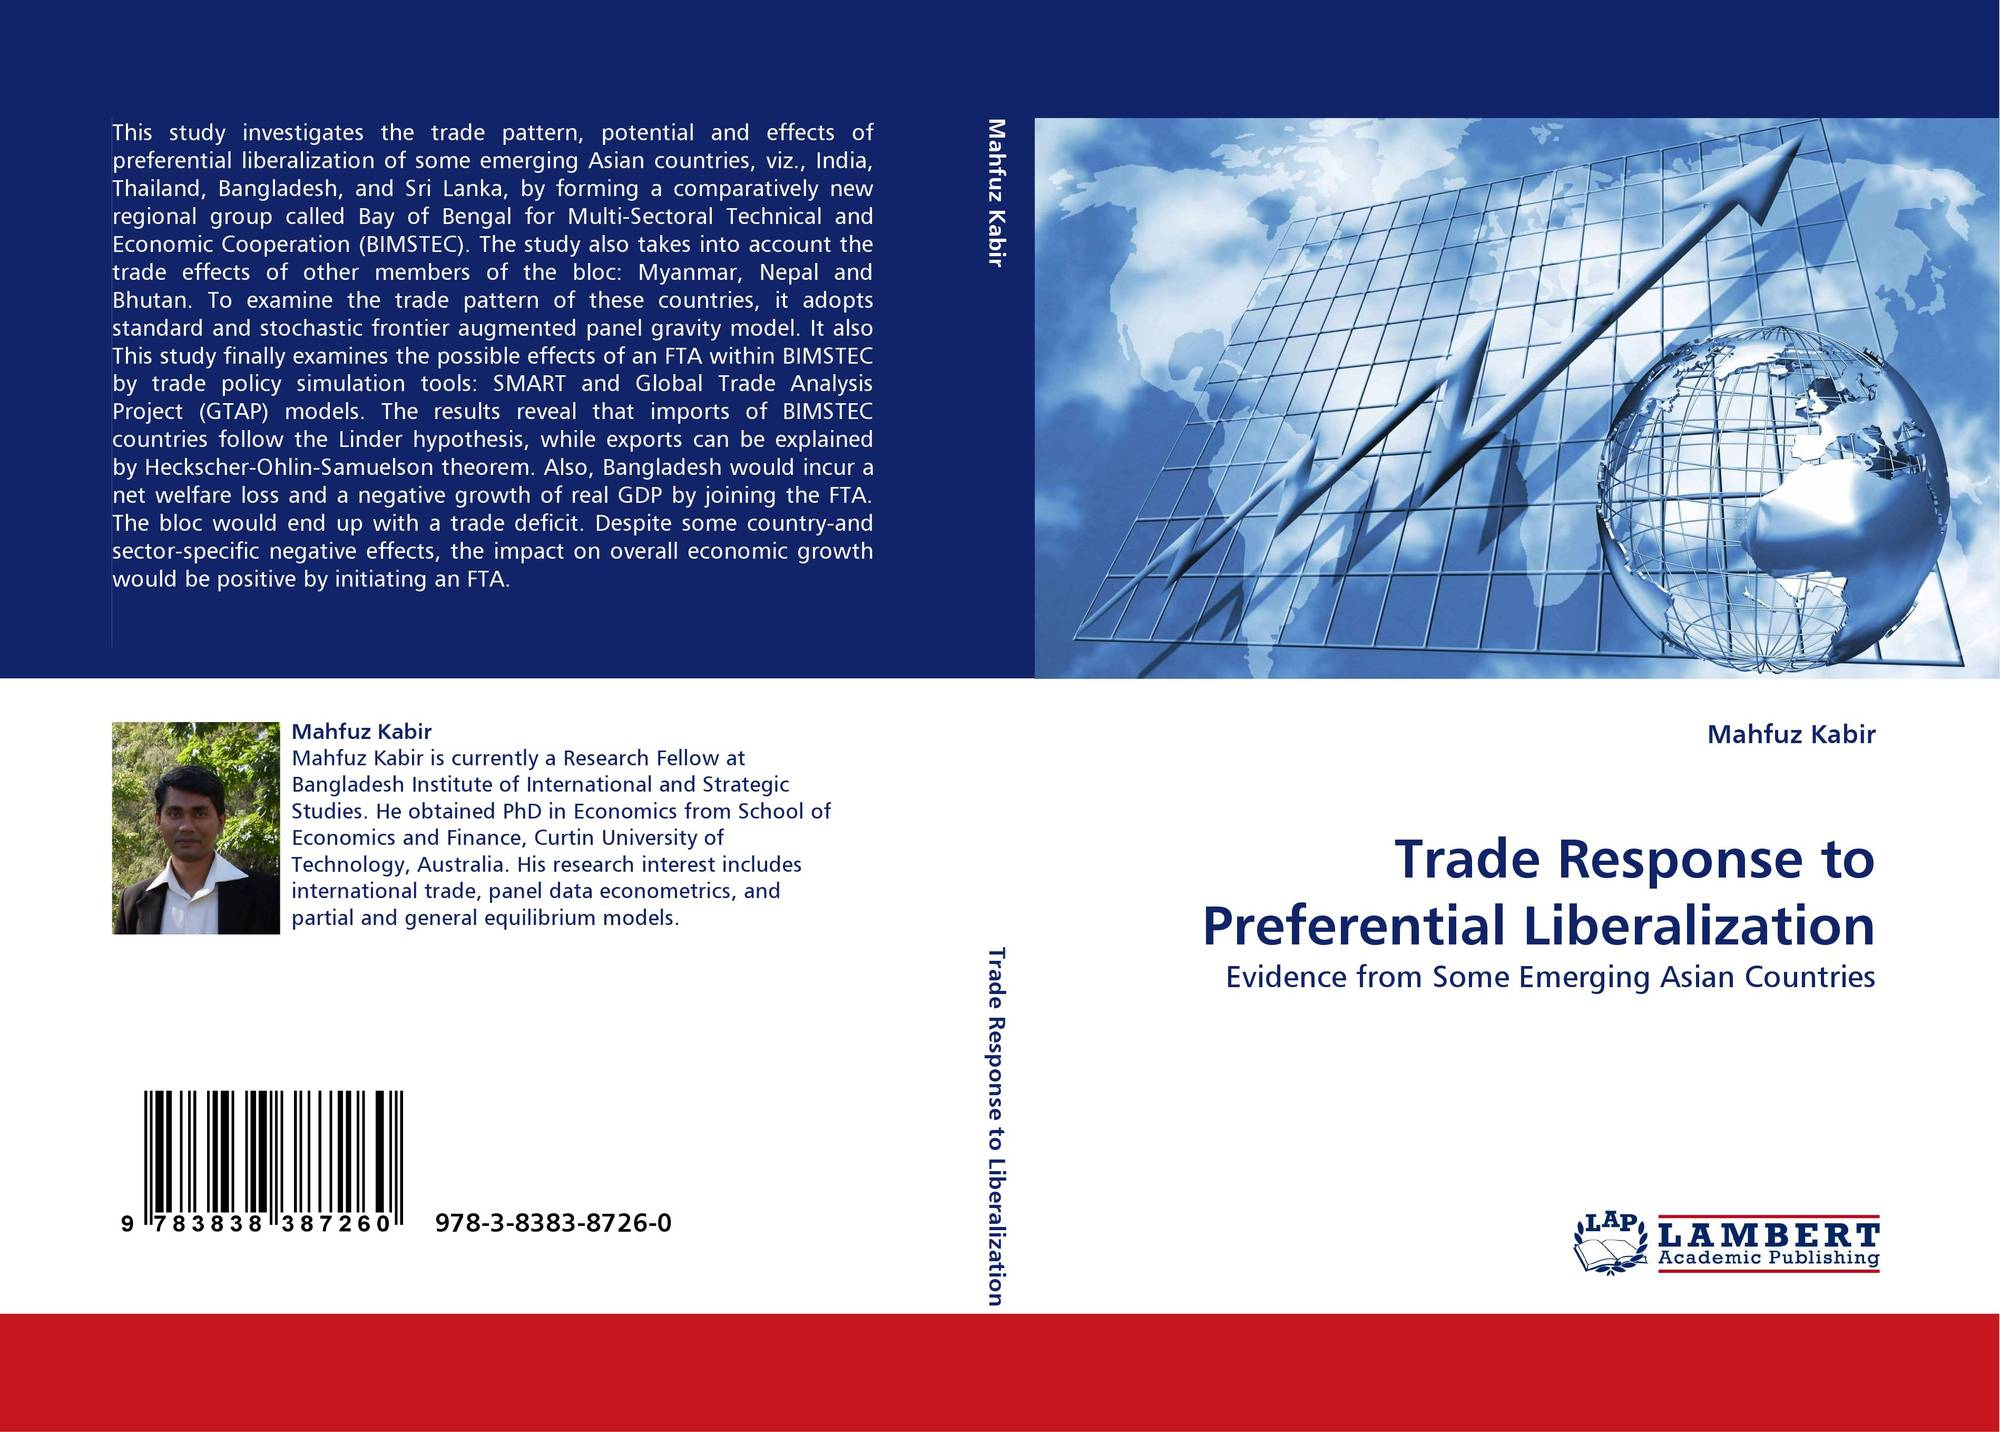 impact of trade liberalization of bangladesh • to analyse the political economy of trade liberalisation in bangladesh and • to examine the impact of trade liberalisation on poverty, growth and livelihood of poor people in bangladesh.